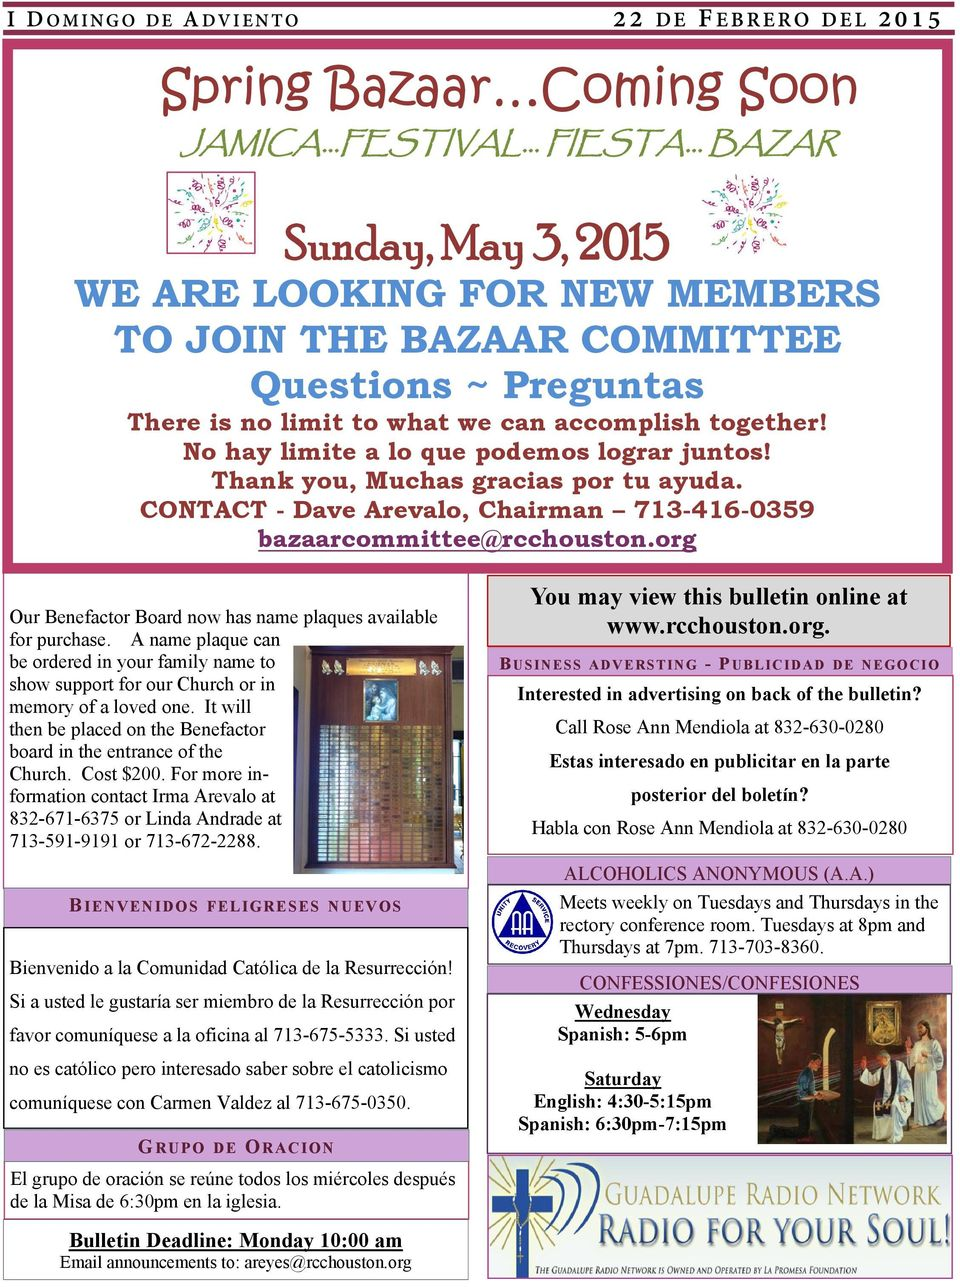 CONTACT - Dave Arevalo, Chairman 713-416-0359 bazaarcommittee@rcchouston.org Our Benefactor Board now has name plaques available for purchase.